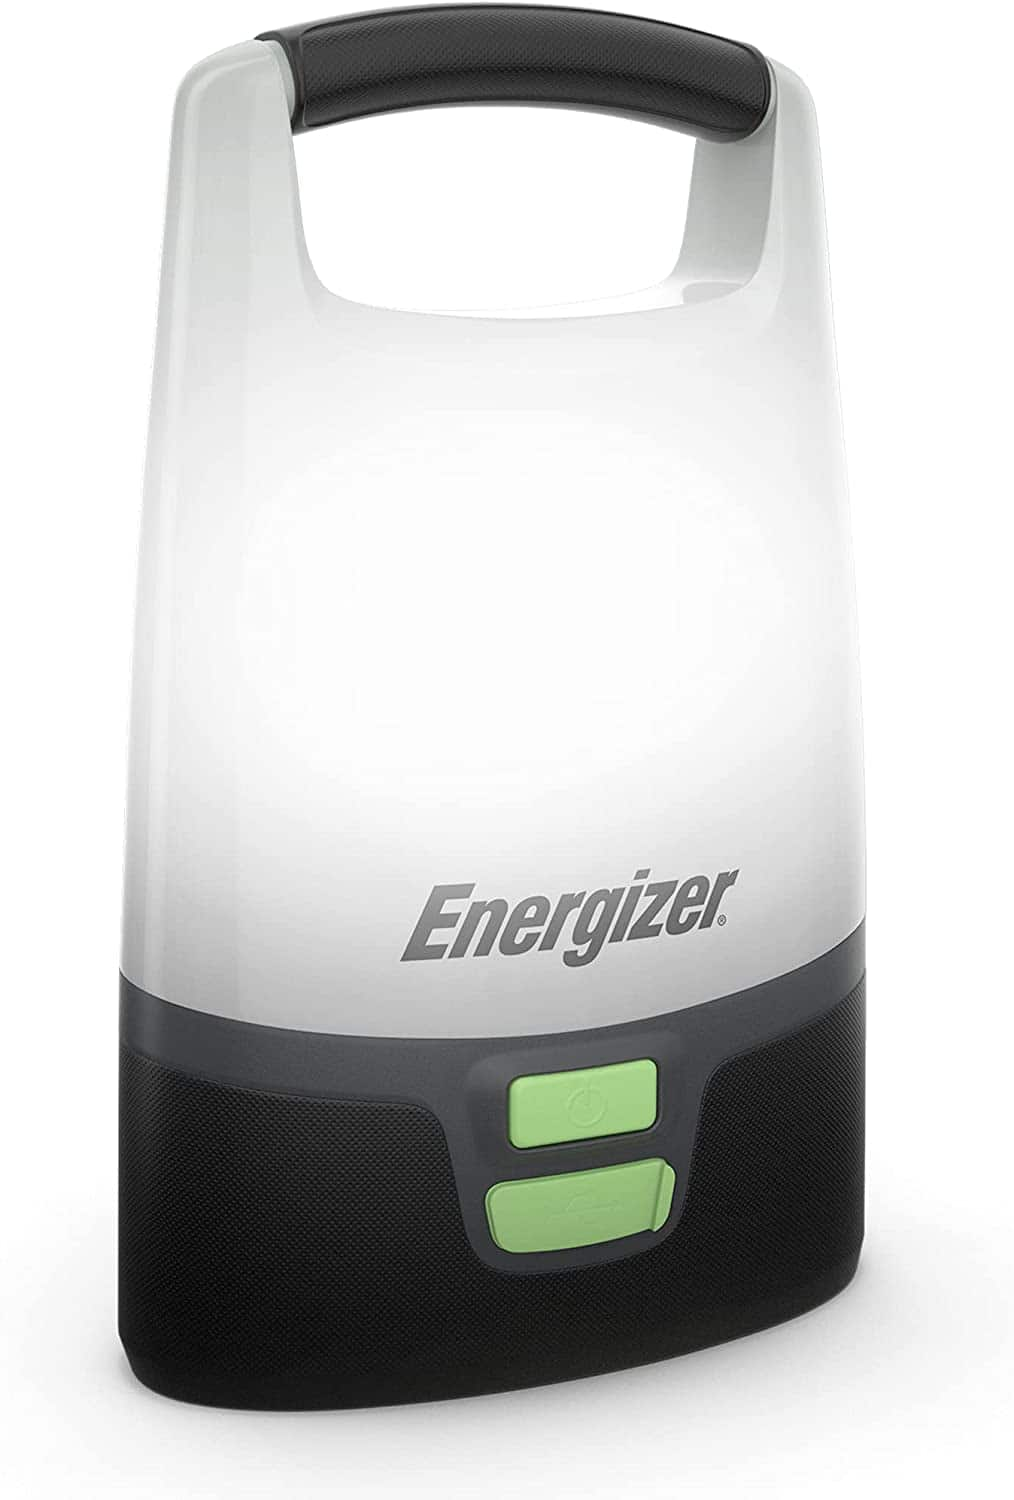 Energizer LED Camping Lantern, IPX4 Water Resistant, 1000 Lumens, Bright and Rugged Lanterns for Camping, Outdoors, Emergency, Power Bank Function $13 at Amazon